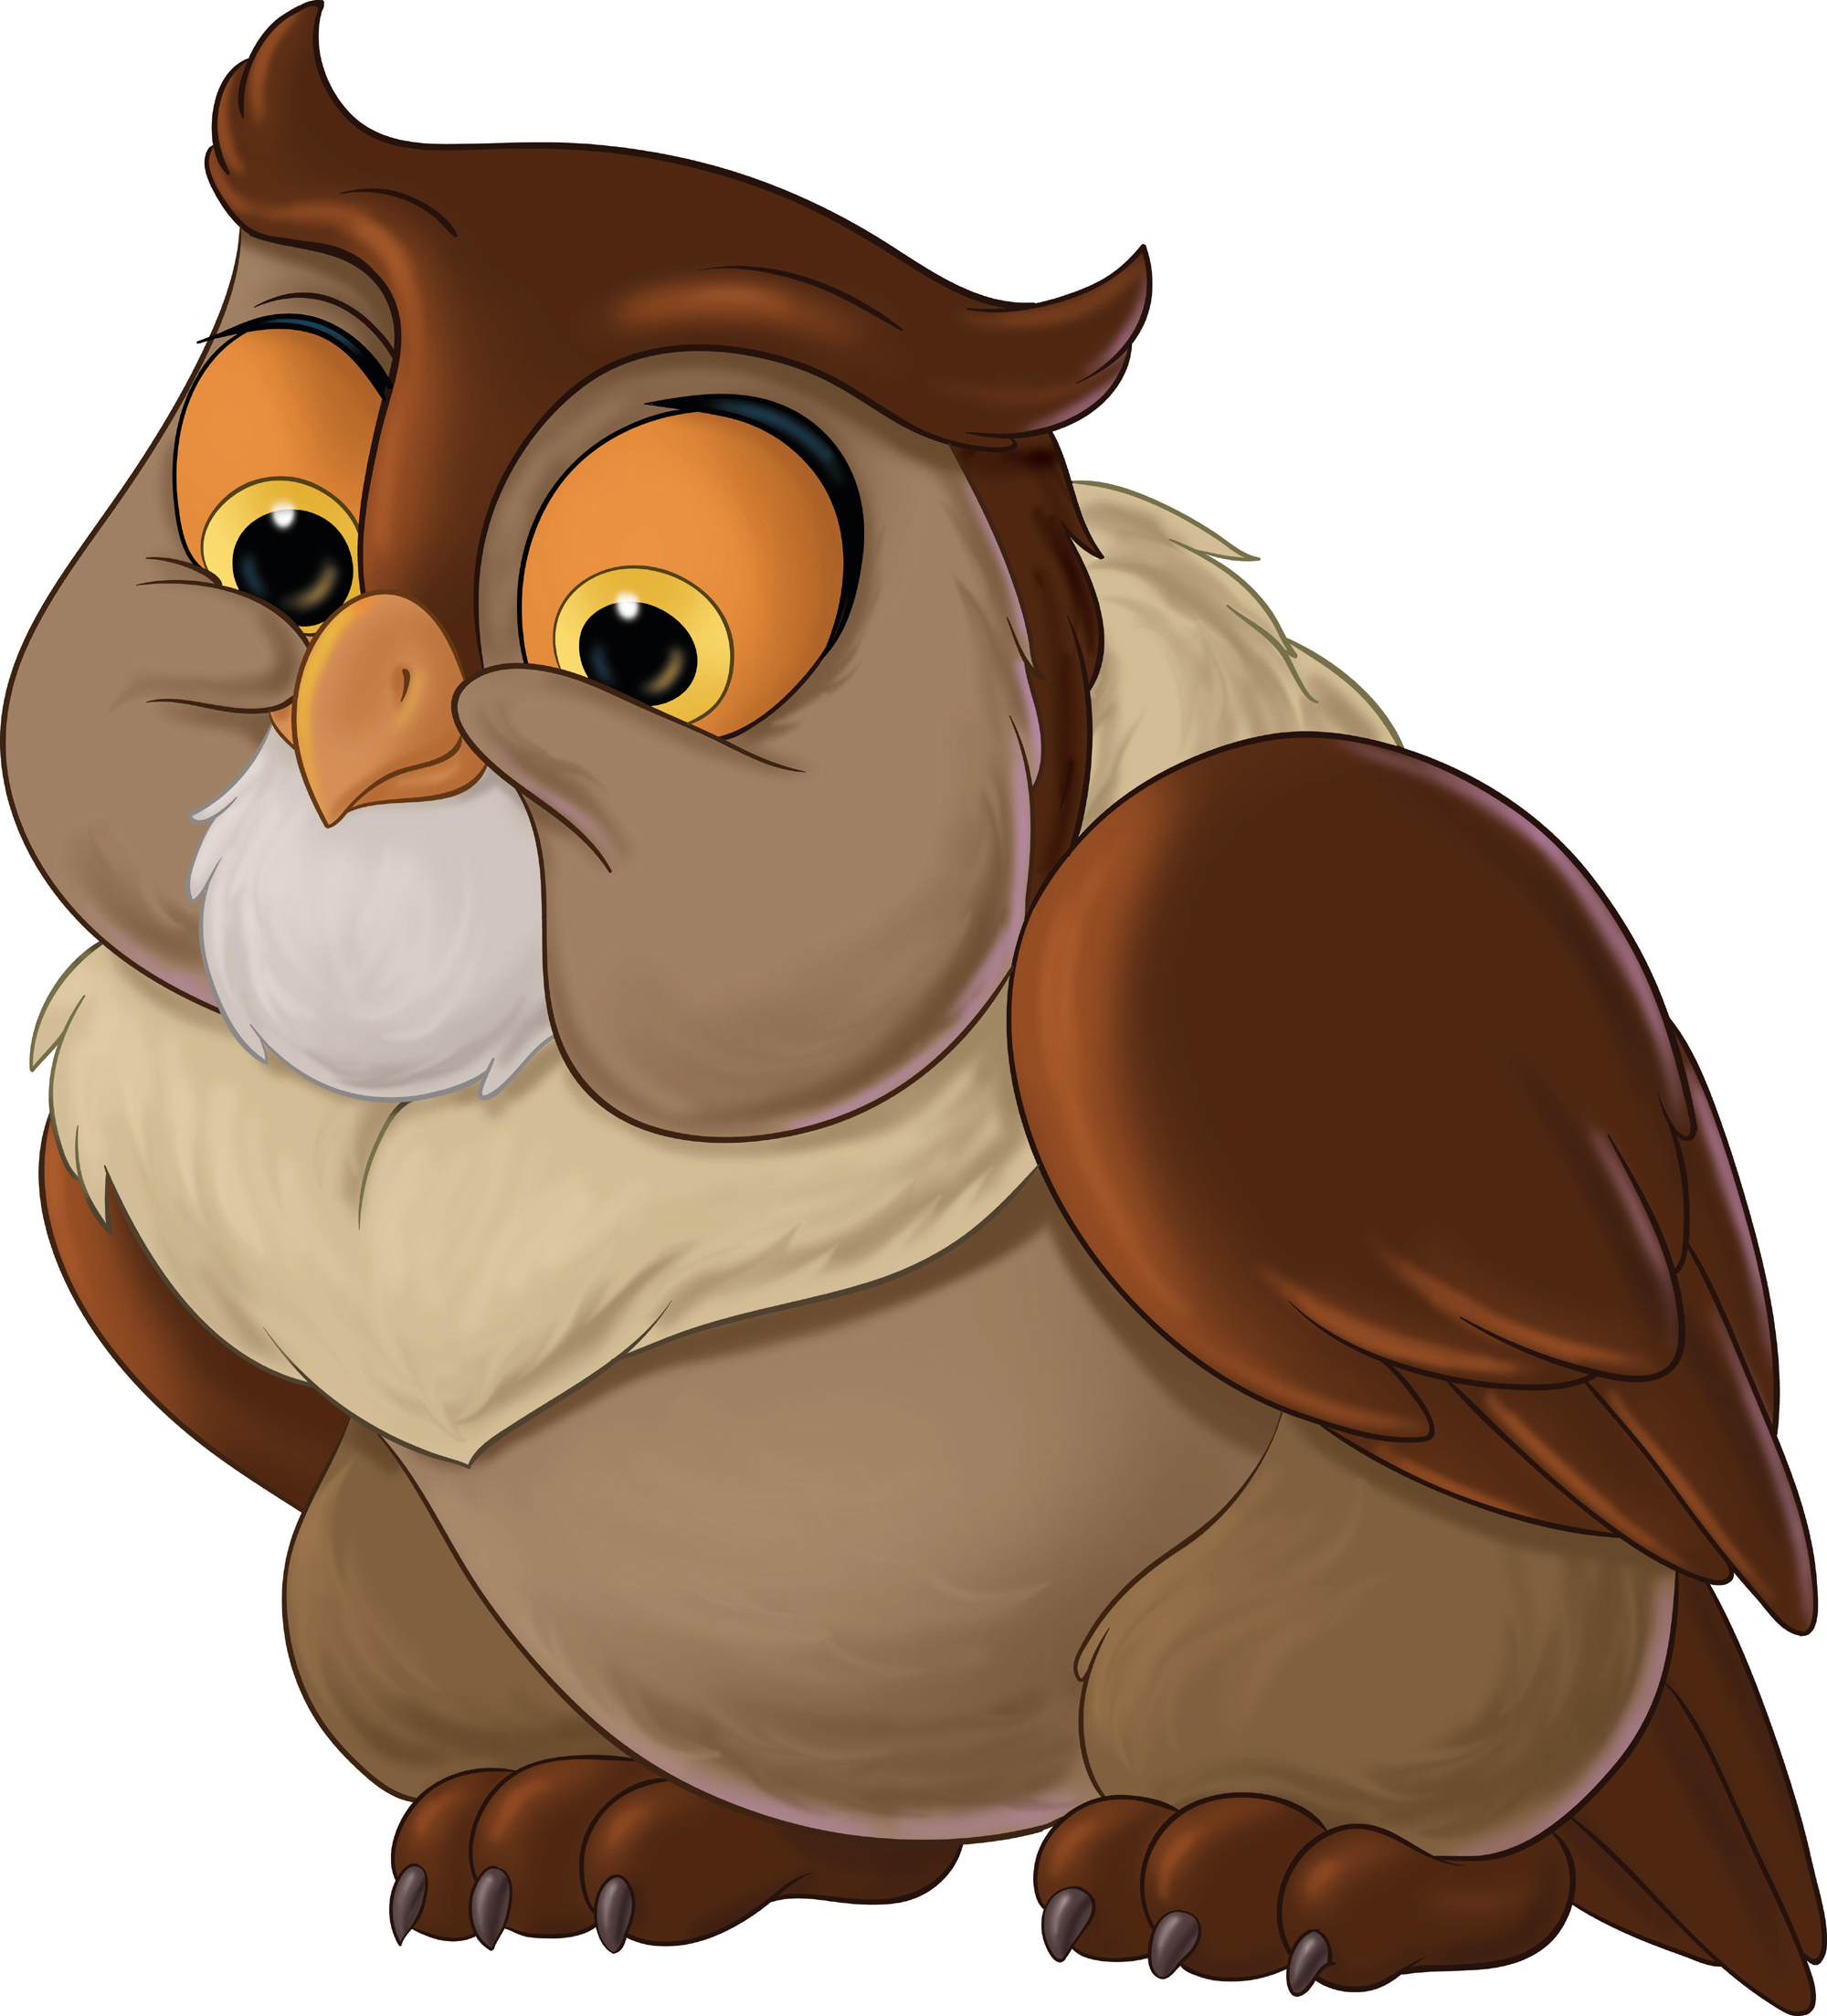 Owlet clipart friend Owl Owl Friend Disney Friend